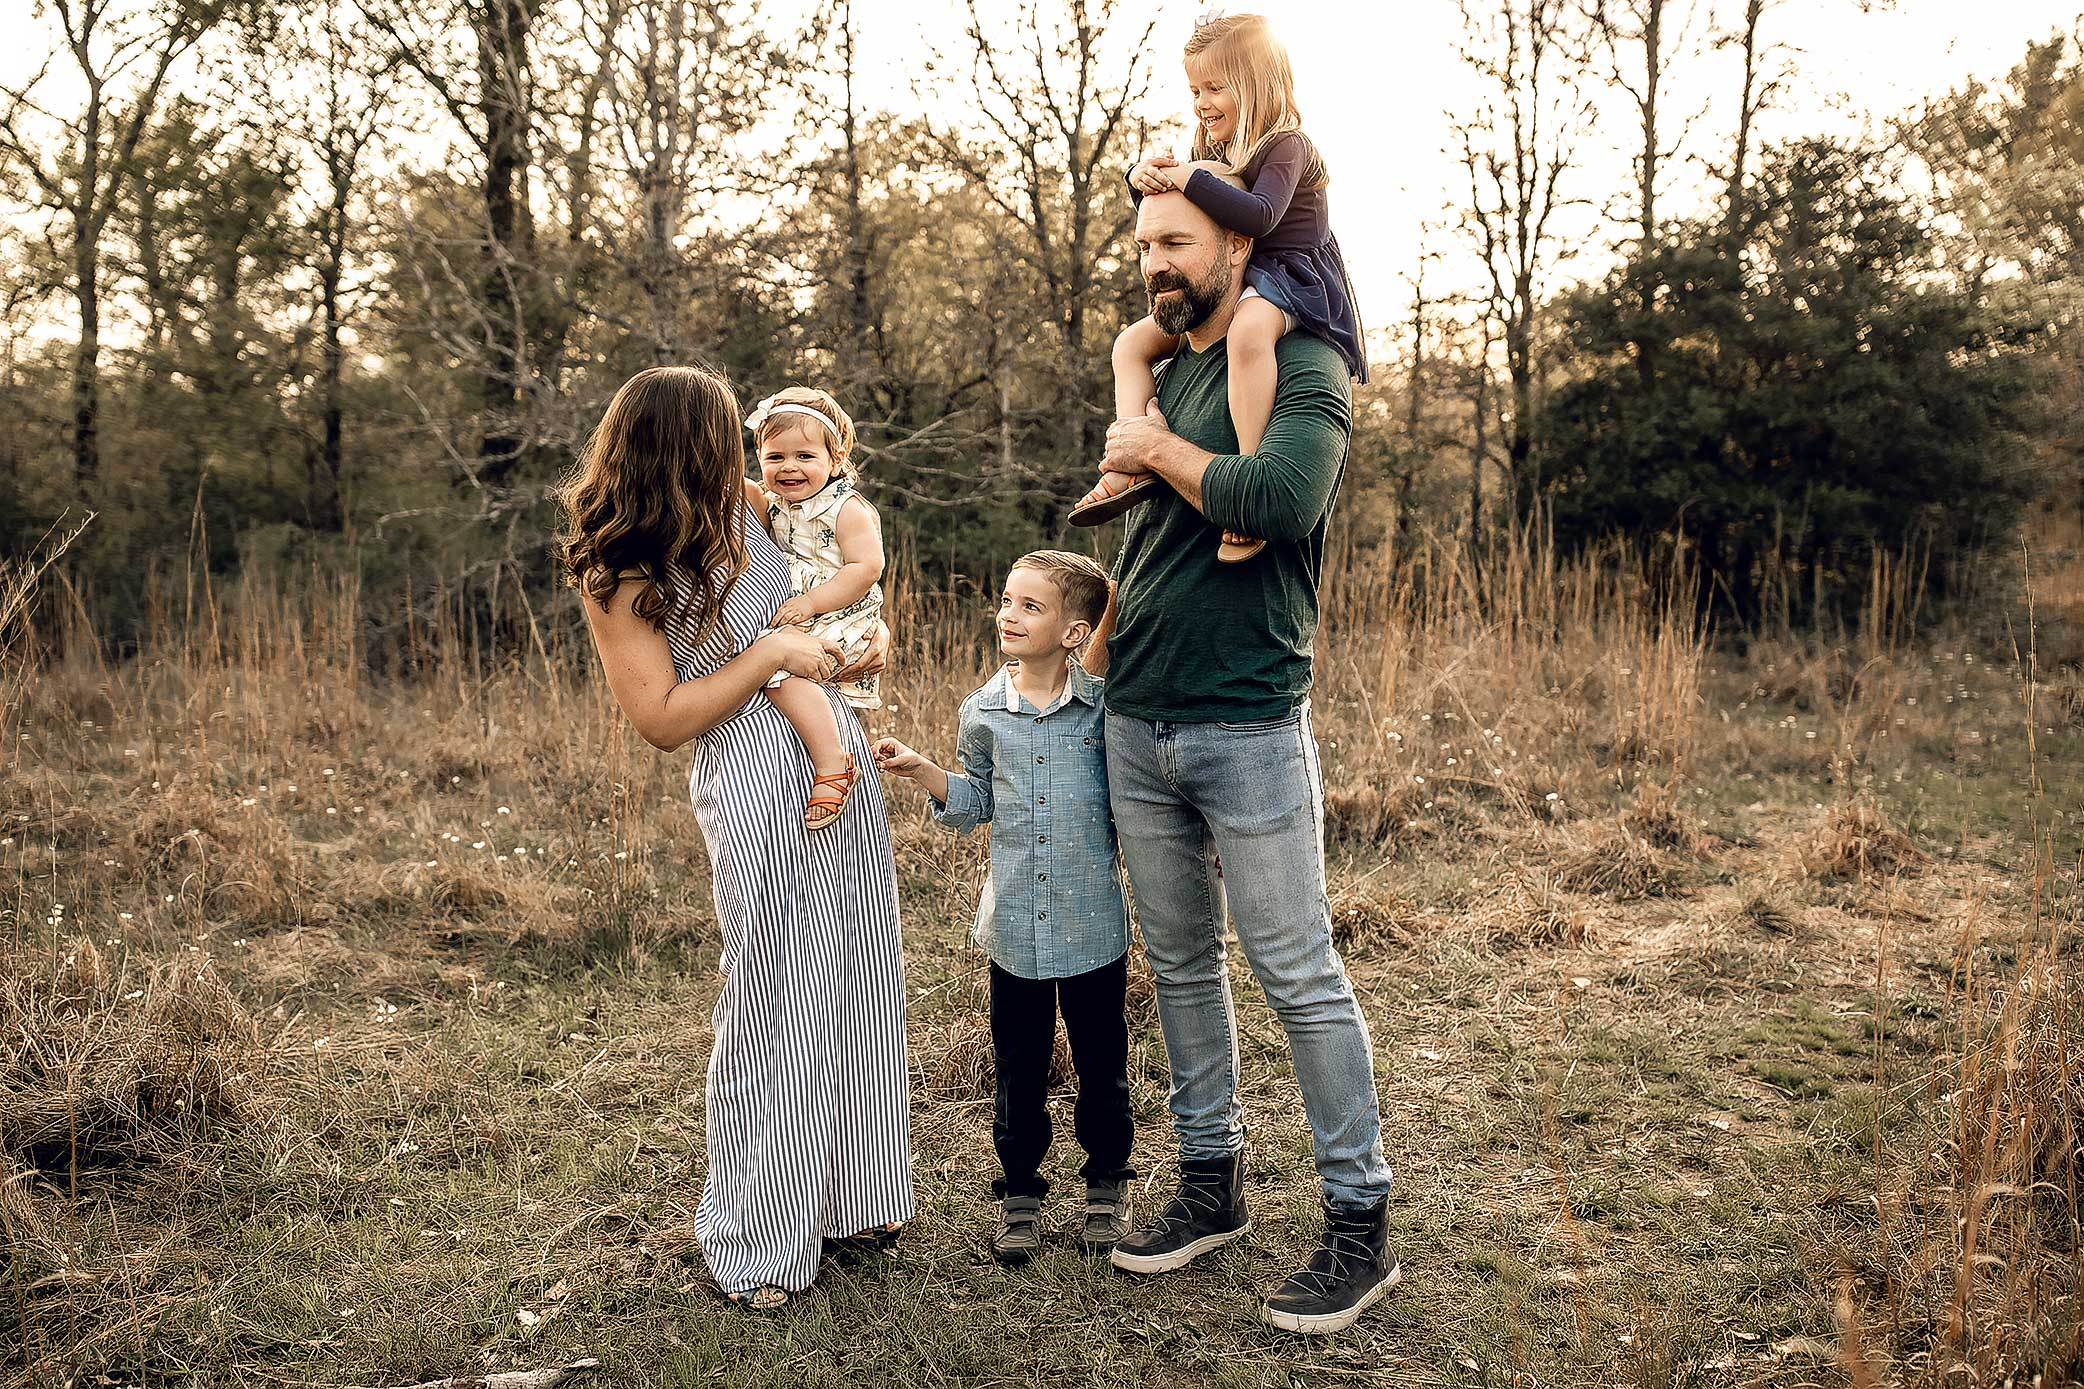 shelby-schiller-photography-lifestyle-family-session-with-3-kids-spring-2019-green-blue-yellow-college-station-1.jpg